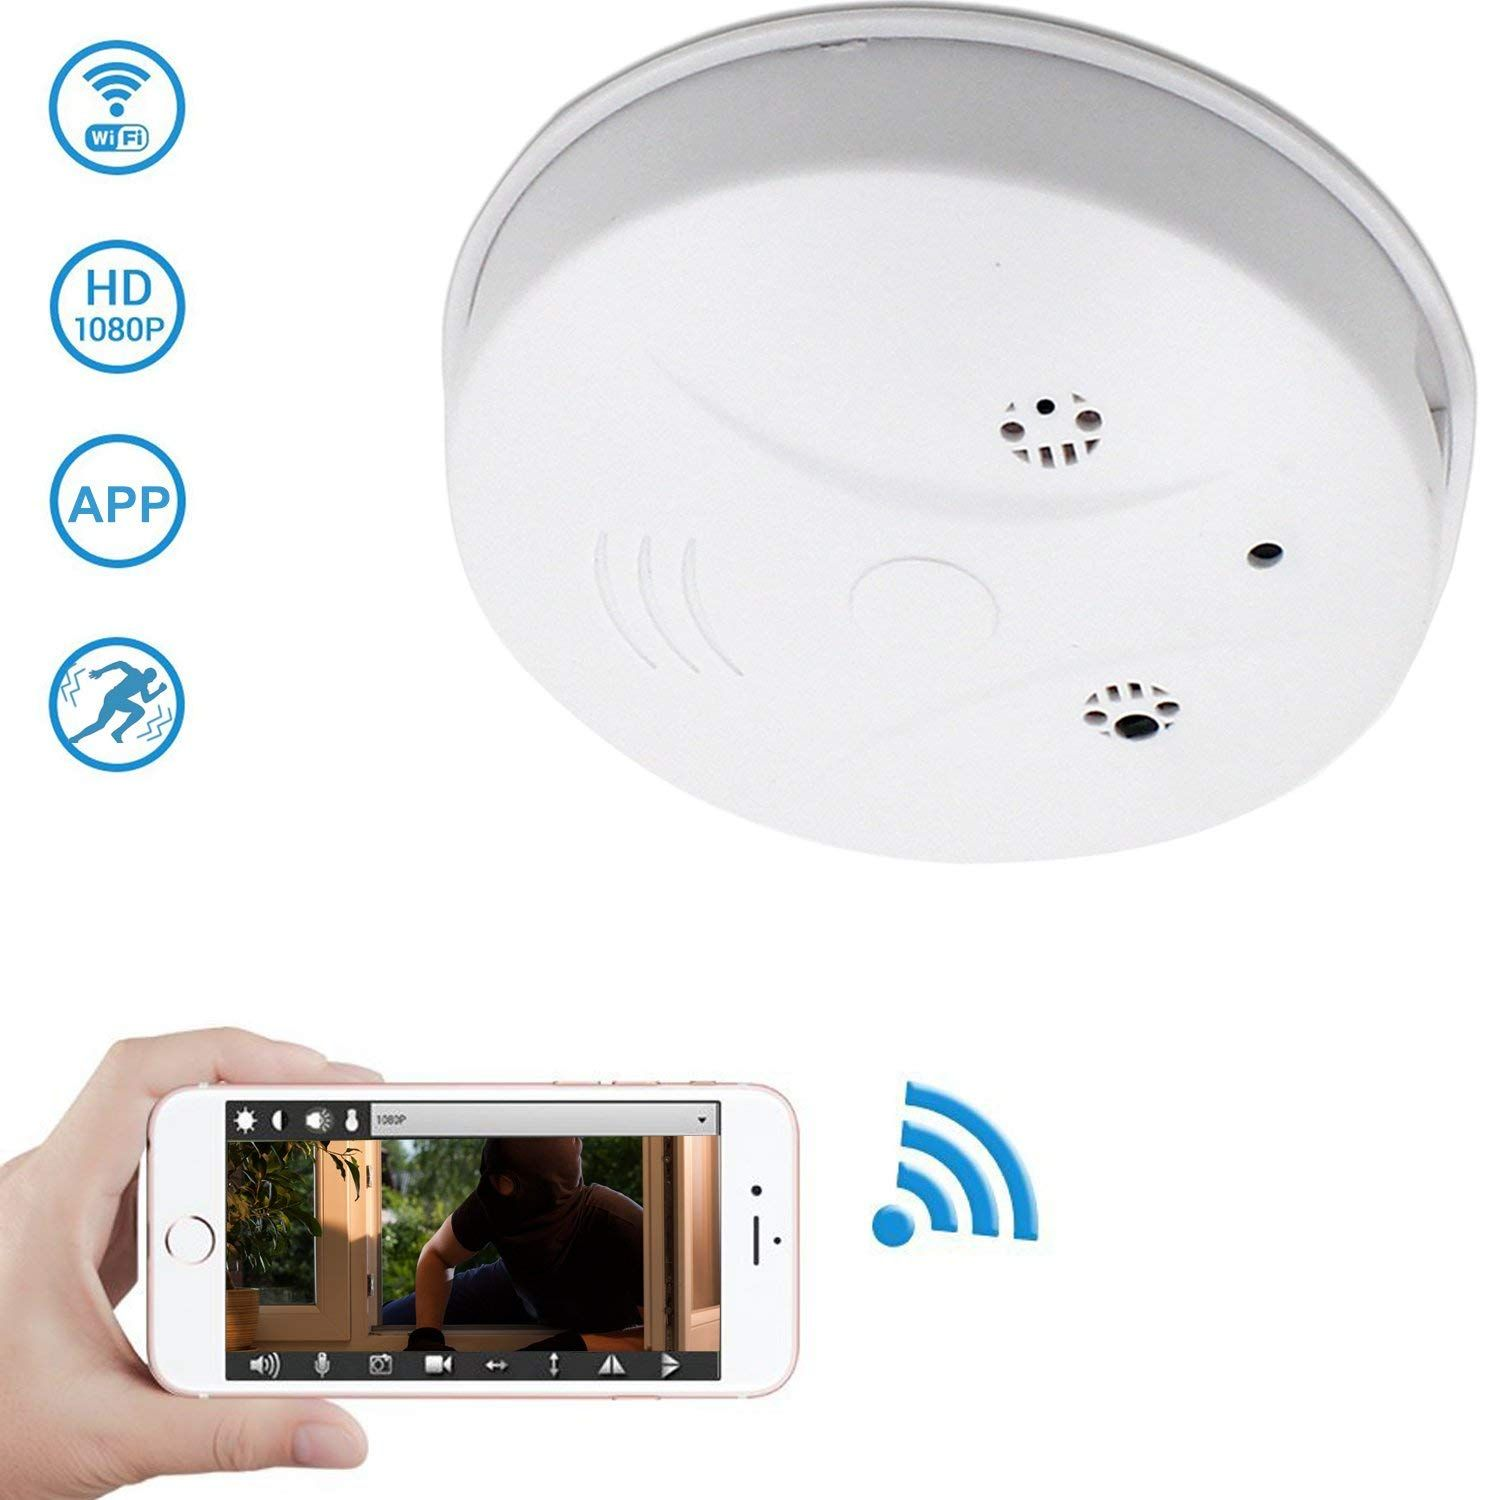 Concealed behind the guise of a smoke alarm, the Zarsson Hidden